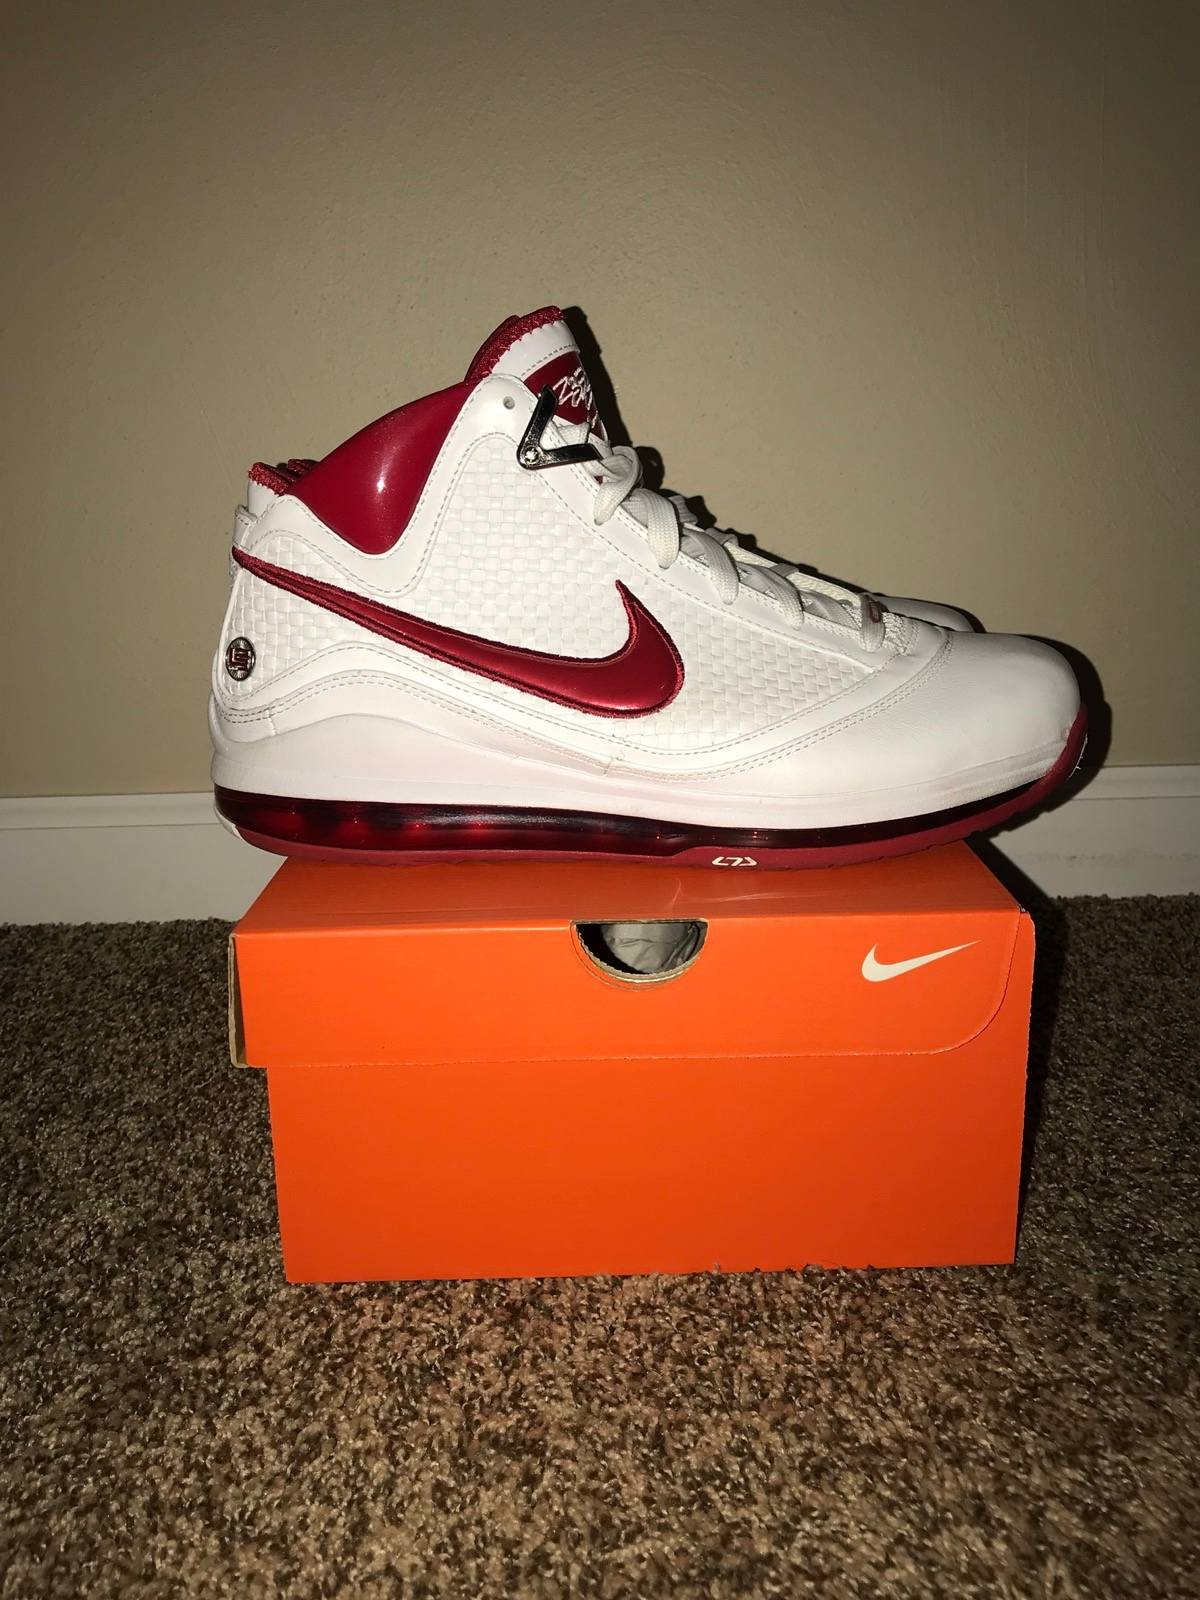 Nike Lebron 7 NFW (No Flywire) Size 11 - Hi-Top Sneakers for Sale ... bffed358a